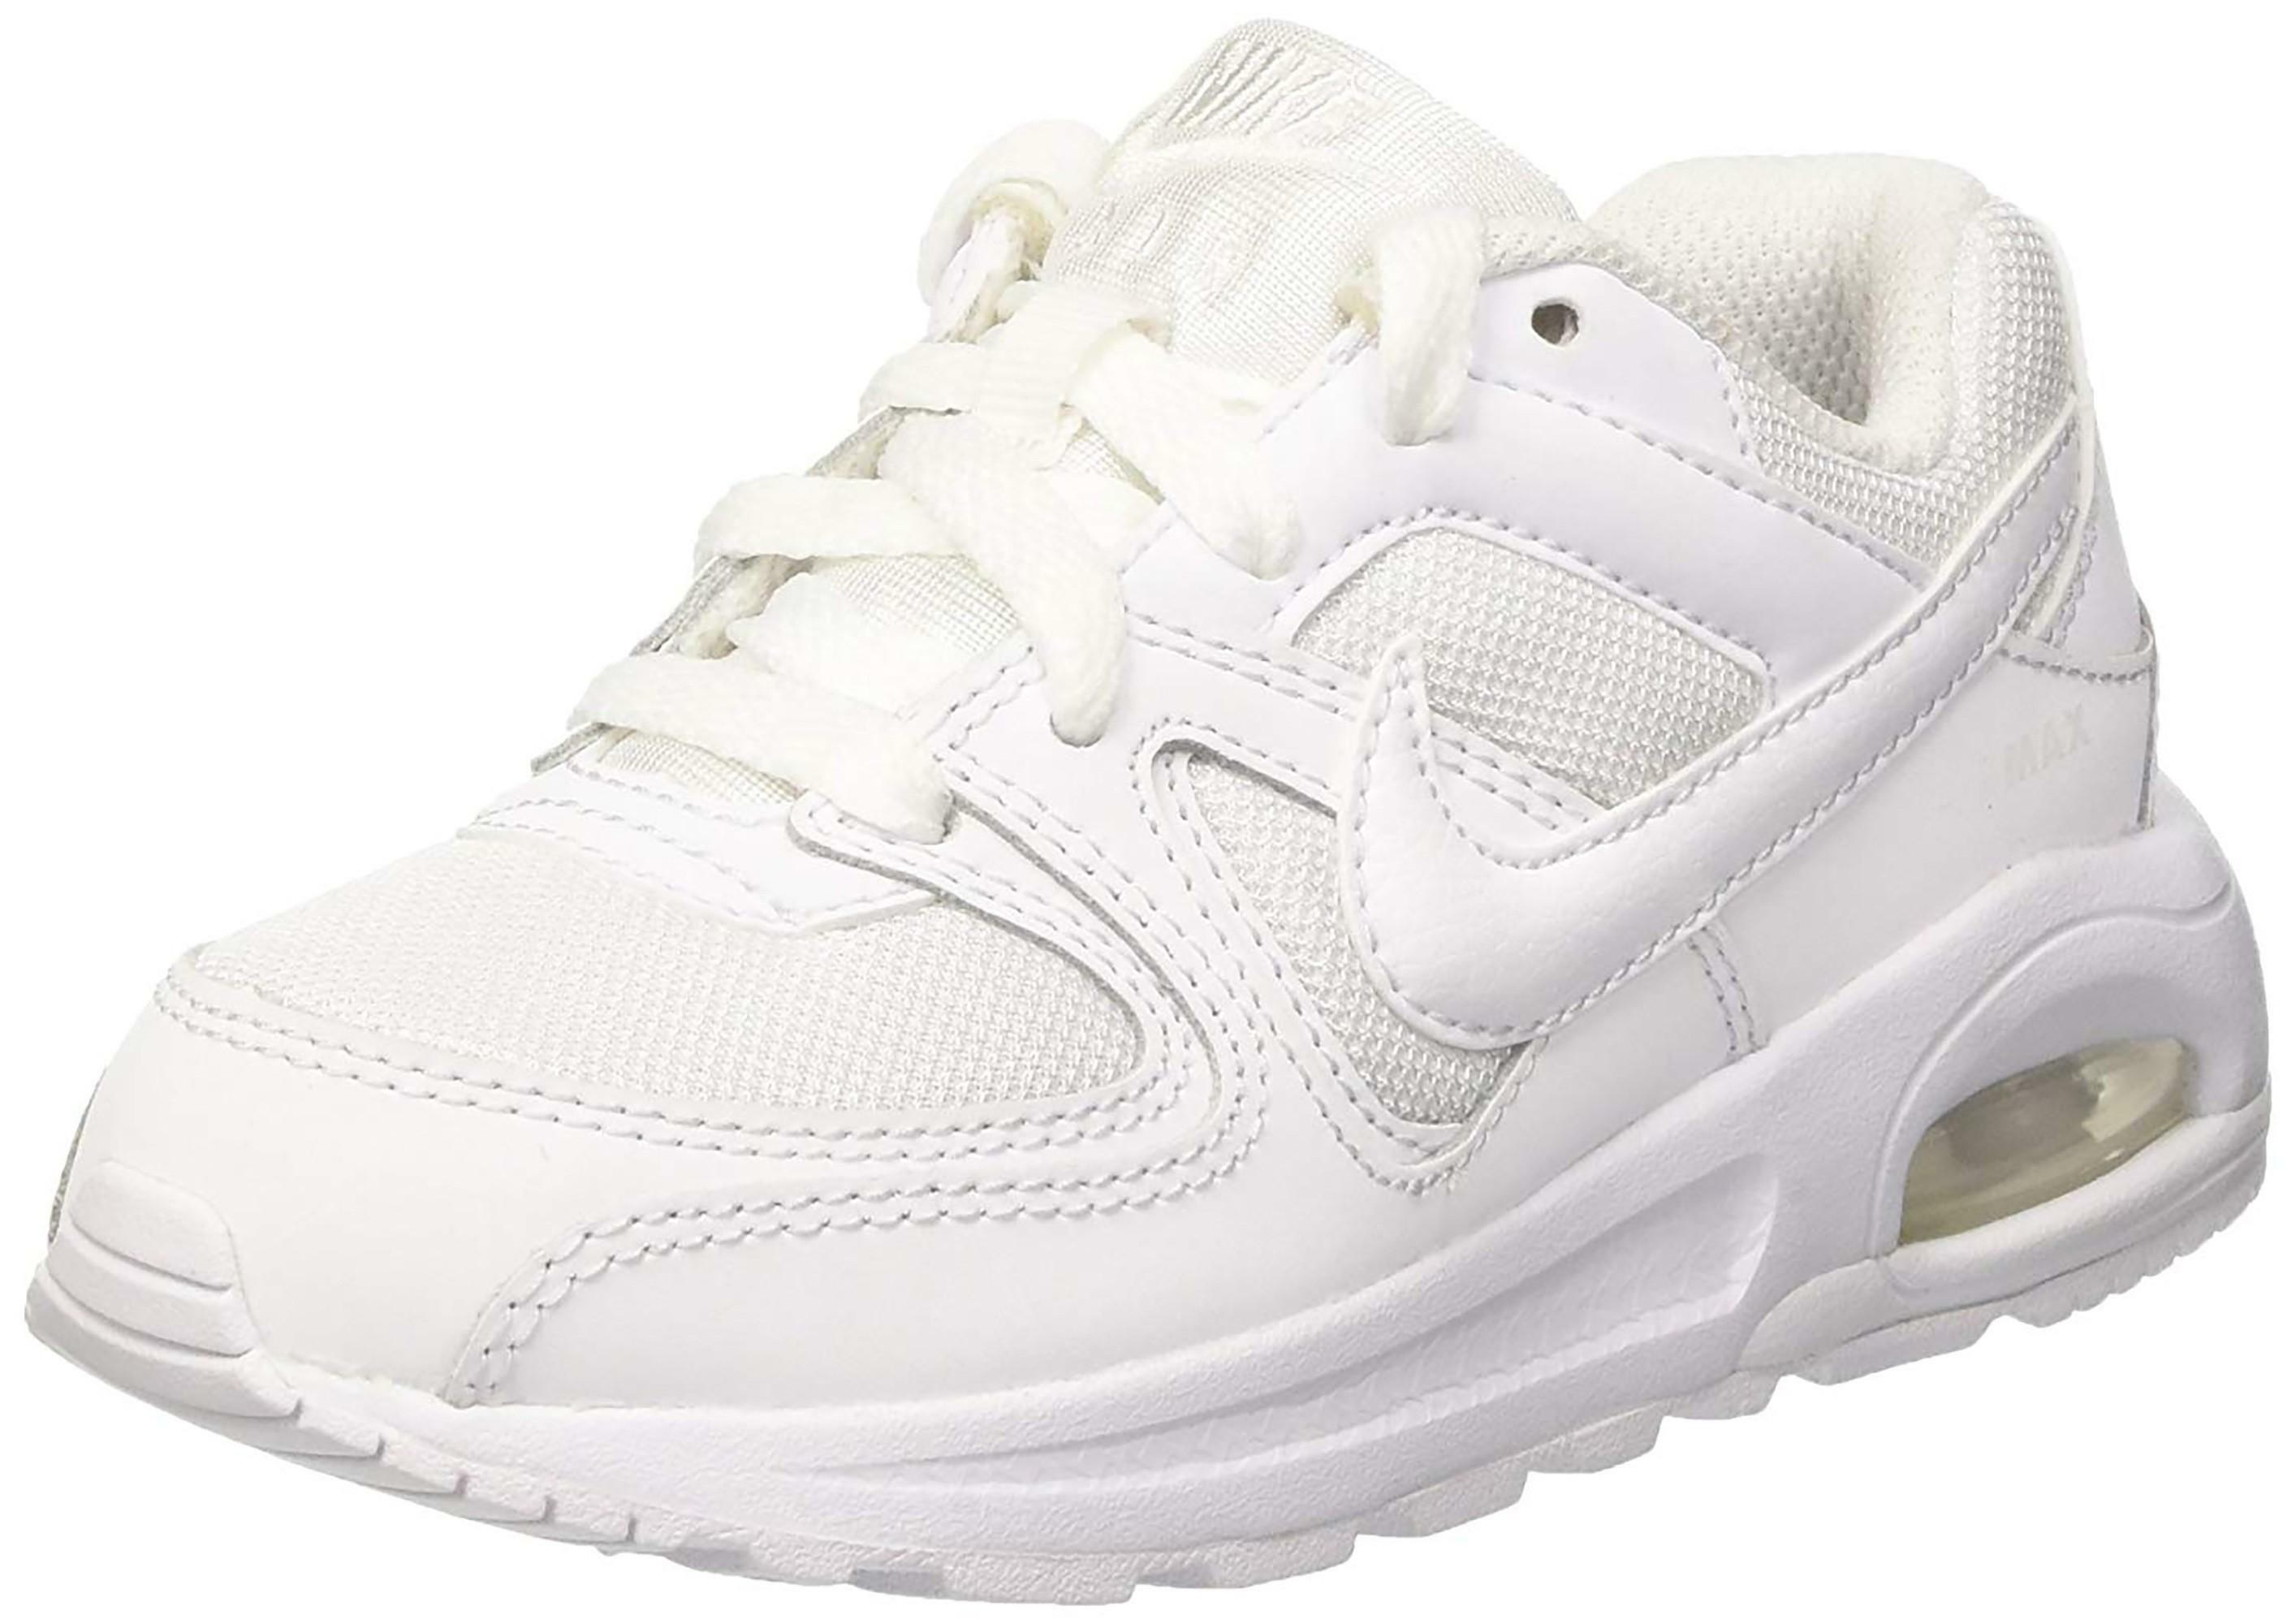 Detalles de NIKE AIR MAX COMMAND FLEX PS ZAPATOS DEPORTIVOS NIOS BLANCO 844347101